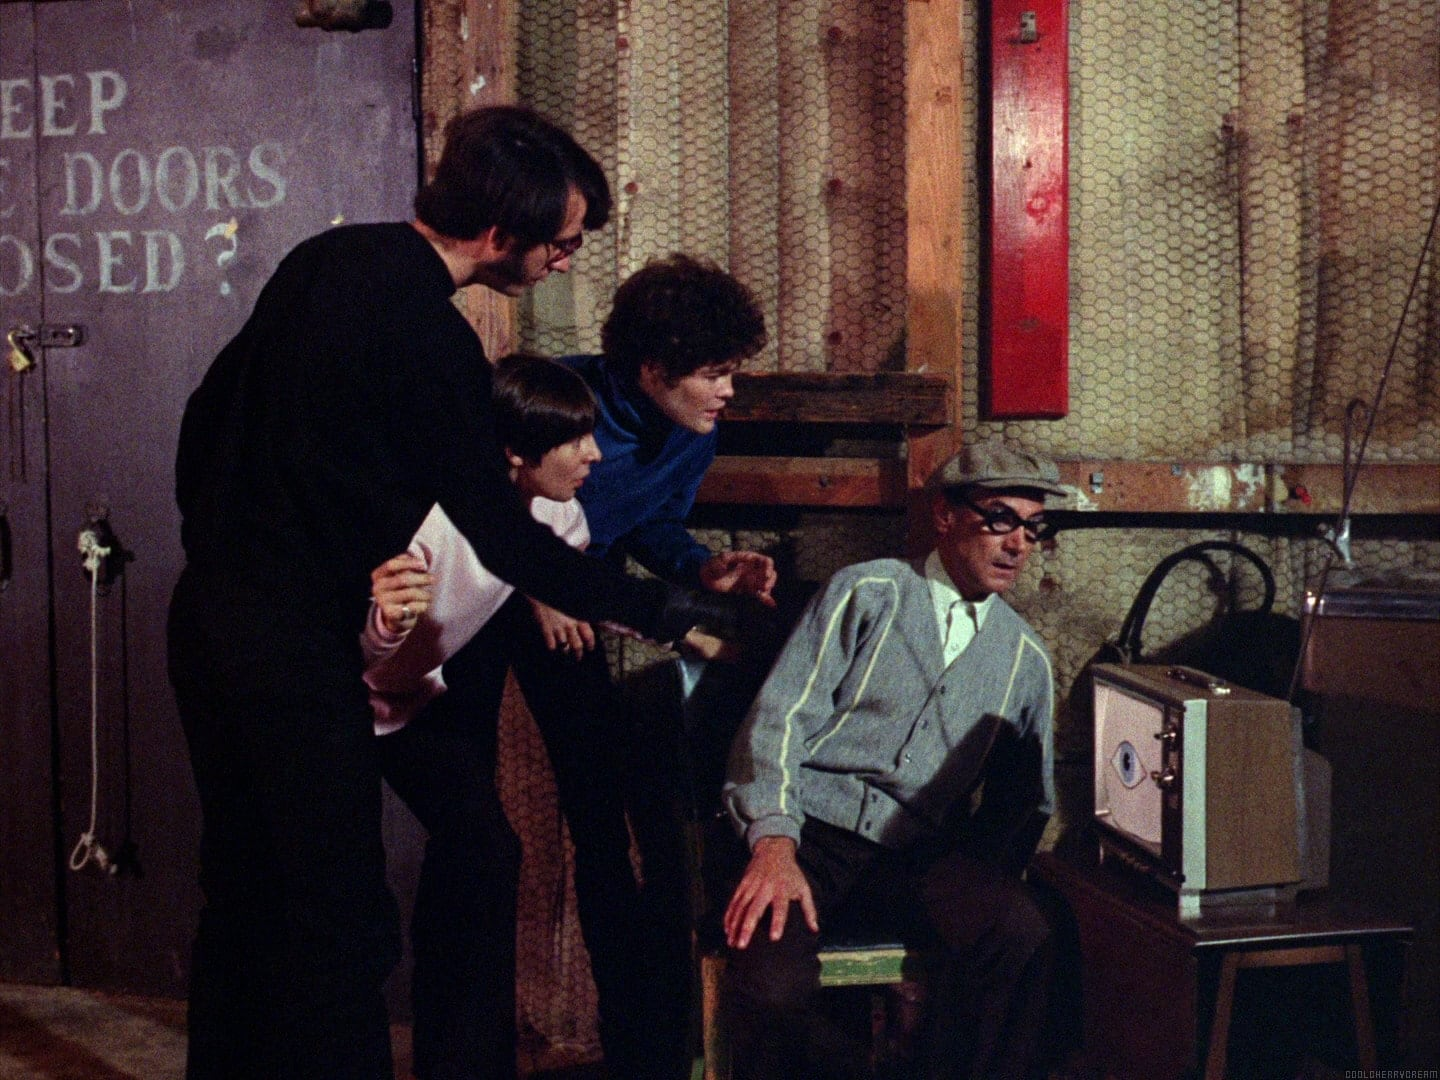 stagehand pictures characters sunshine factory monkees fan site